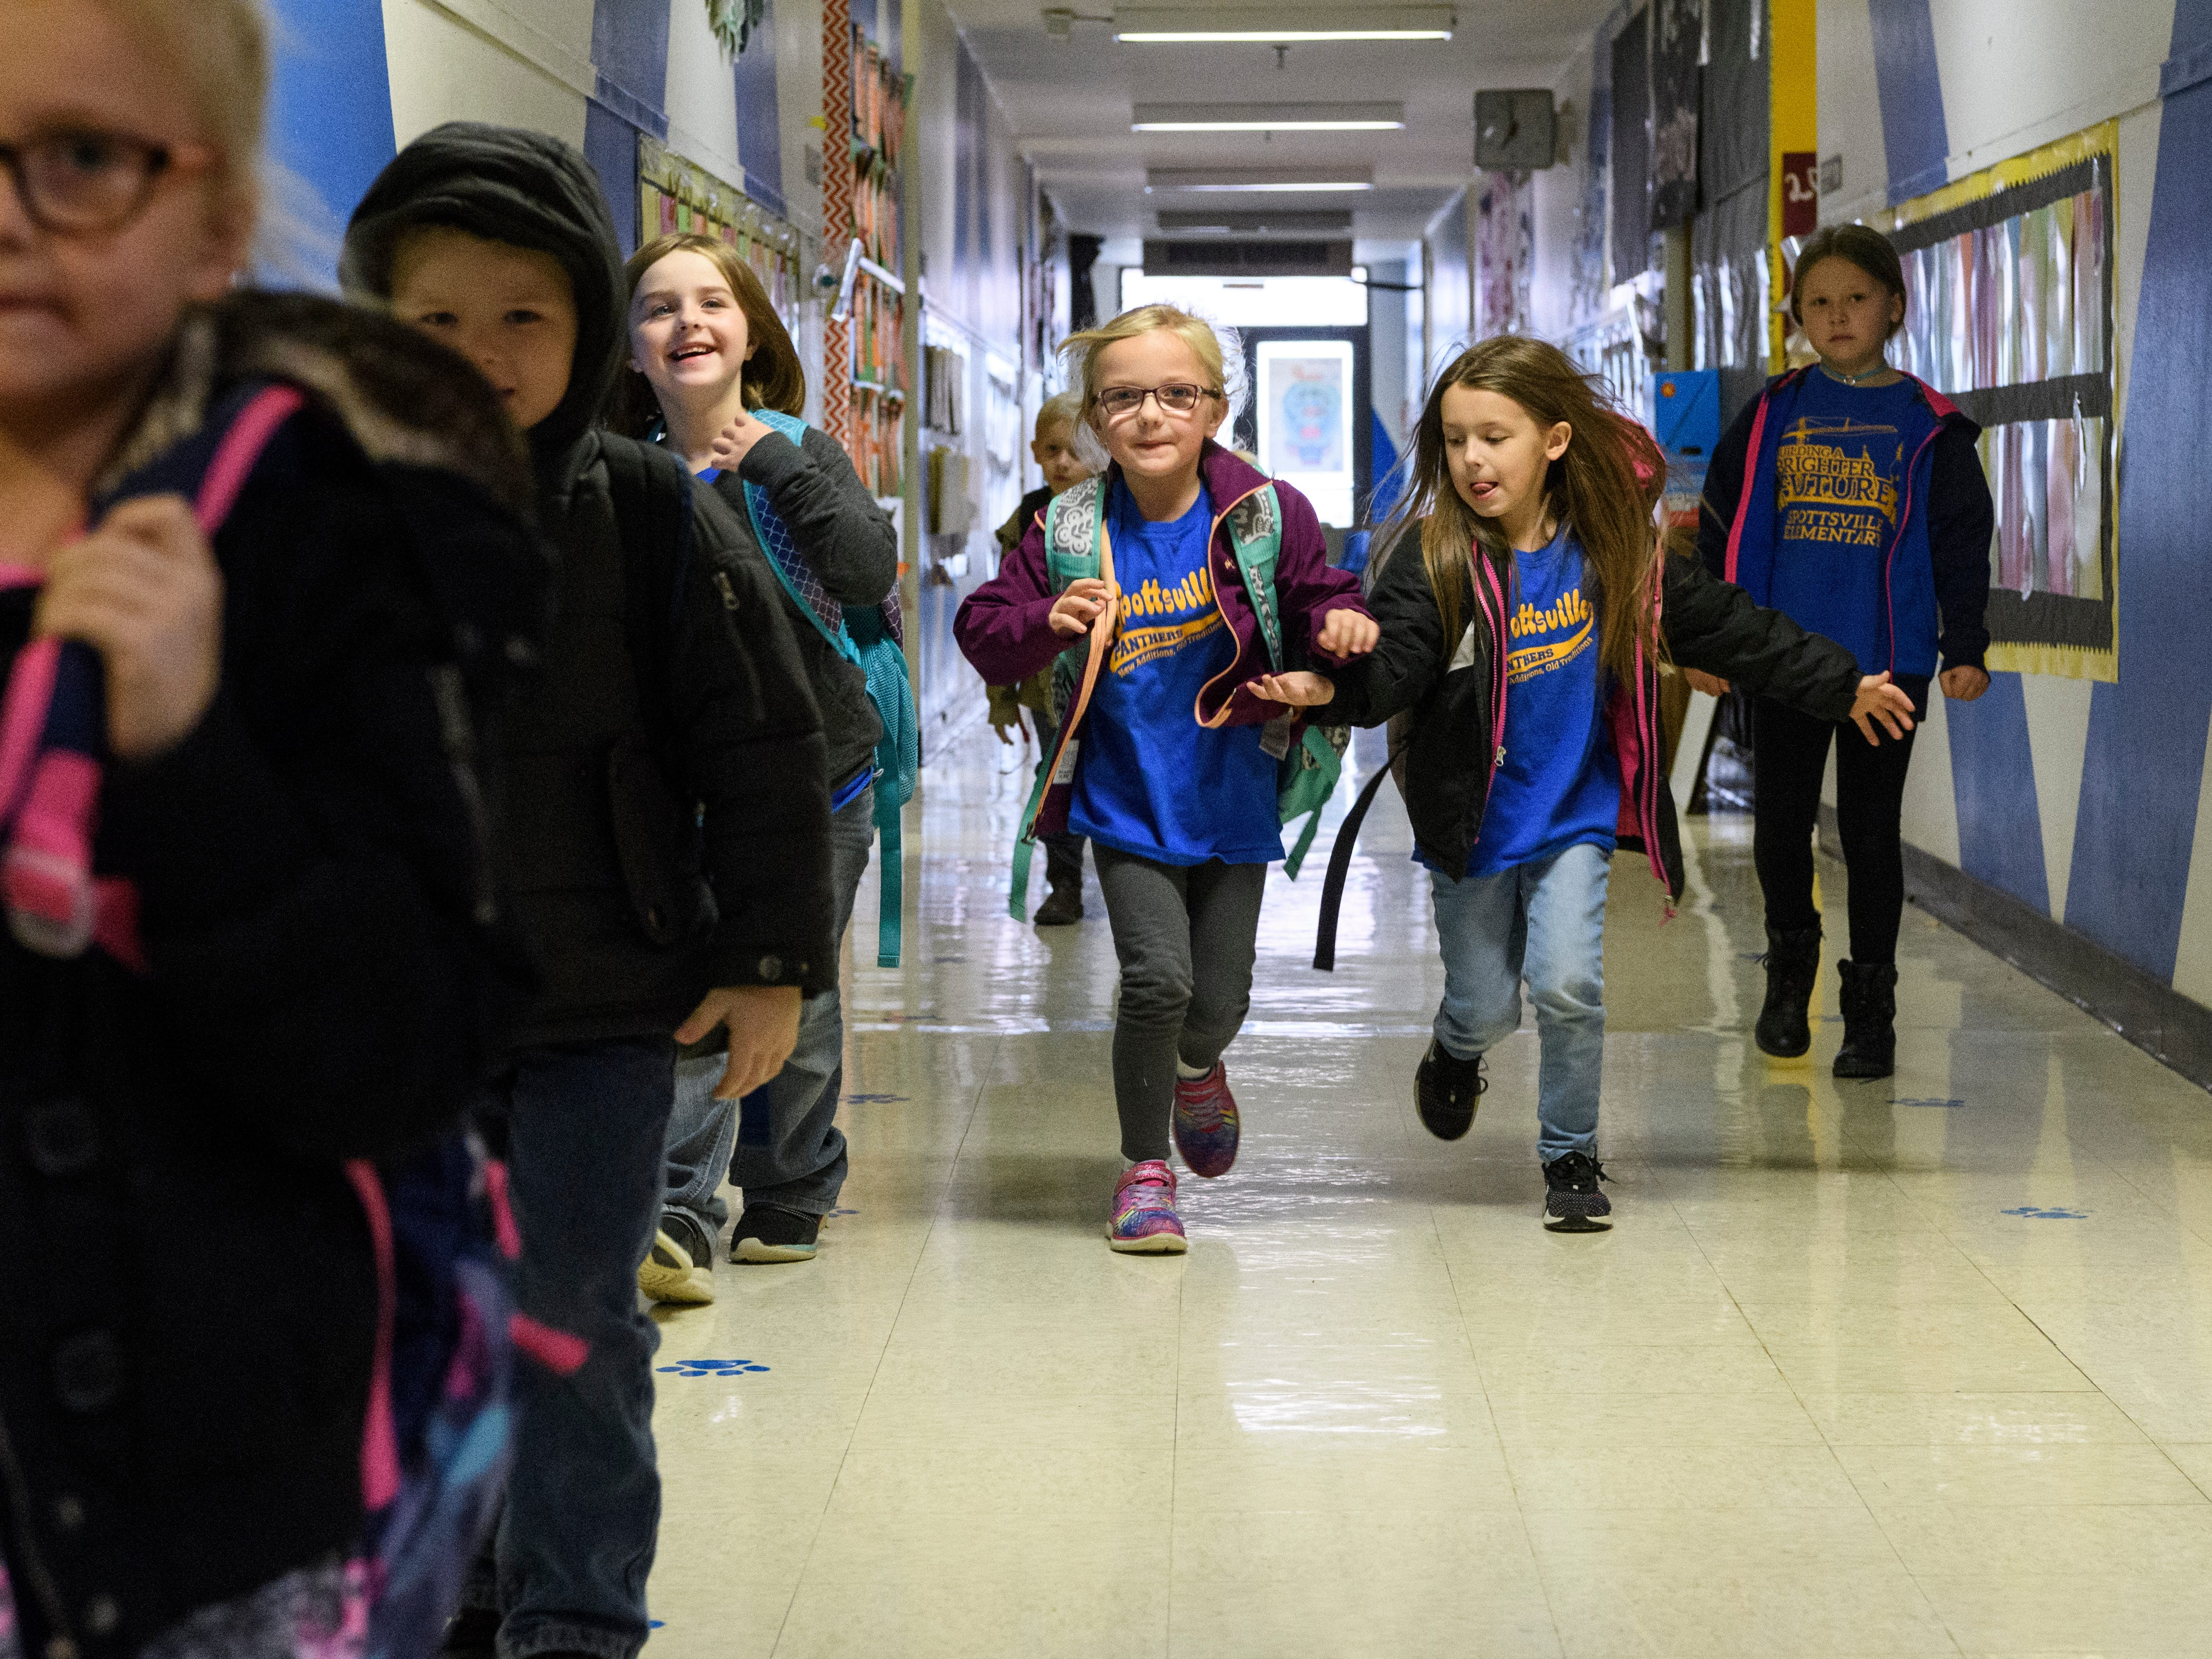 Kindergarteners Addyson O'Nan, center left, and Grace Ruark, center right, run down the hallway of Henderson's Spottsville Elementary school one last time after being dismissed from Denise Cannon's class, Friday morning, Nov. 9, 2018. The students moved into the new school building,  located right beside the old one, Monday morning, November 12, 2018.